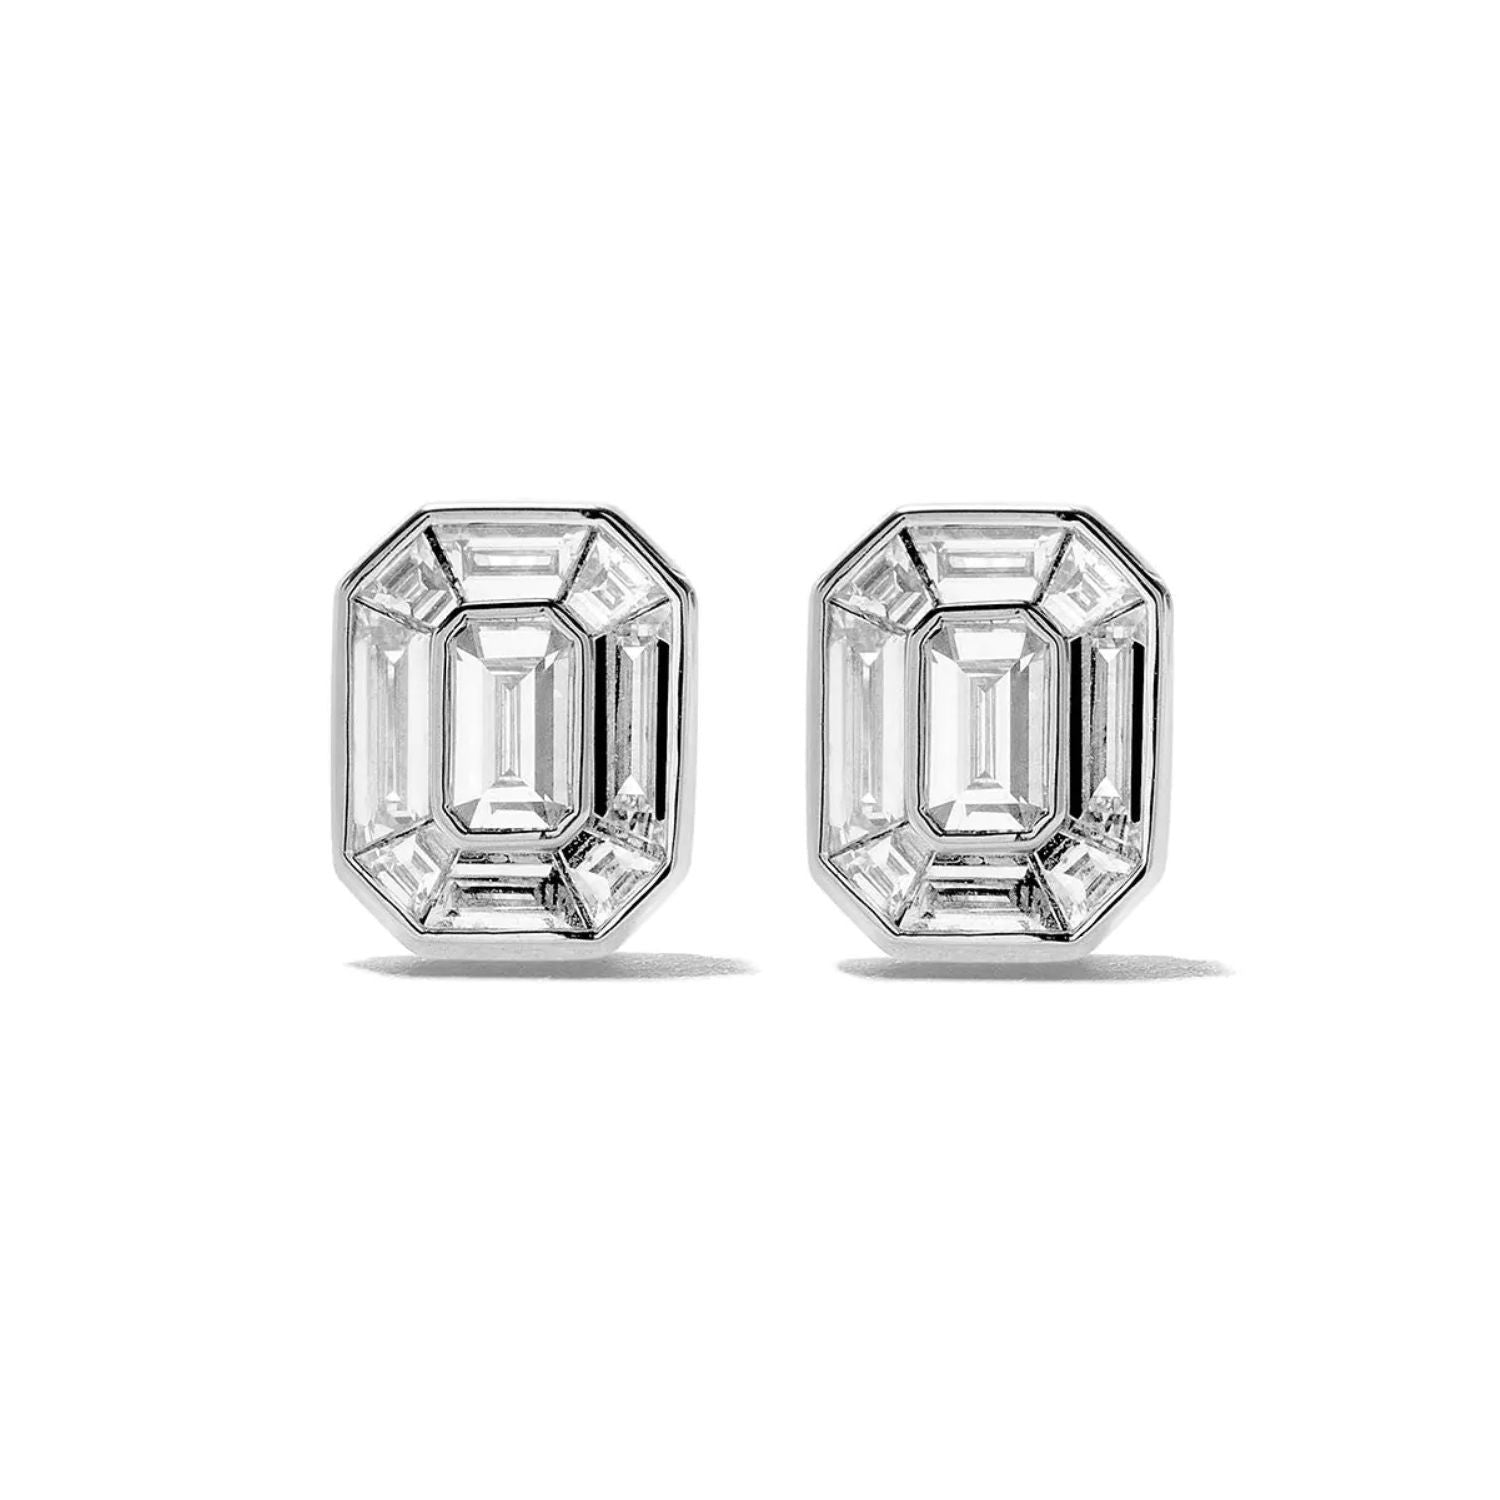 mye-illusion-diamond-stud-earrings-in-18k-white-gold